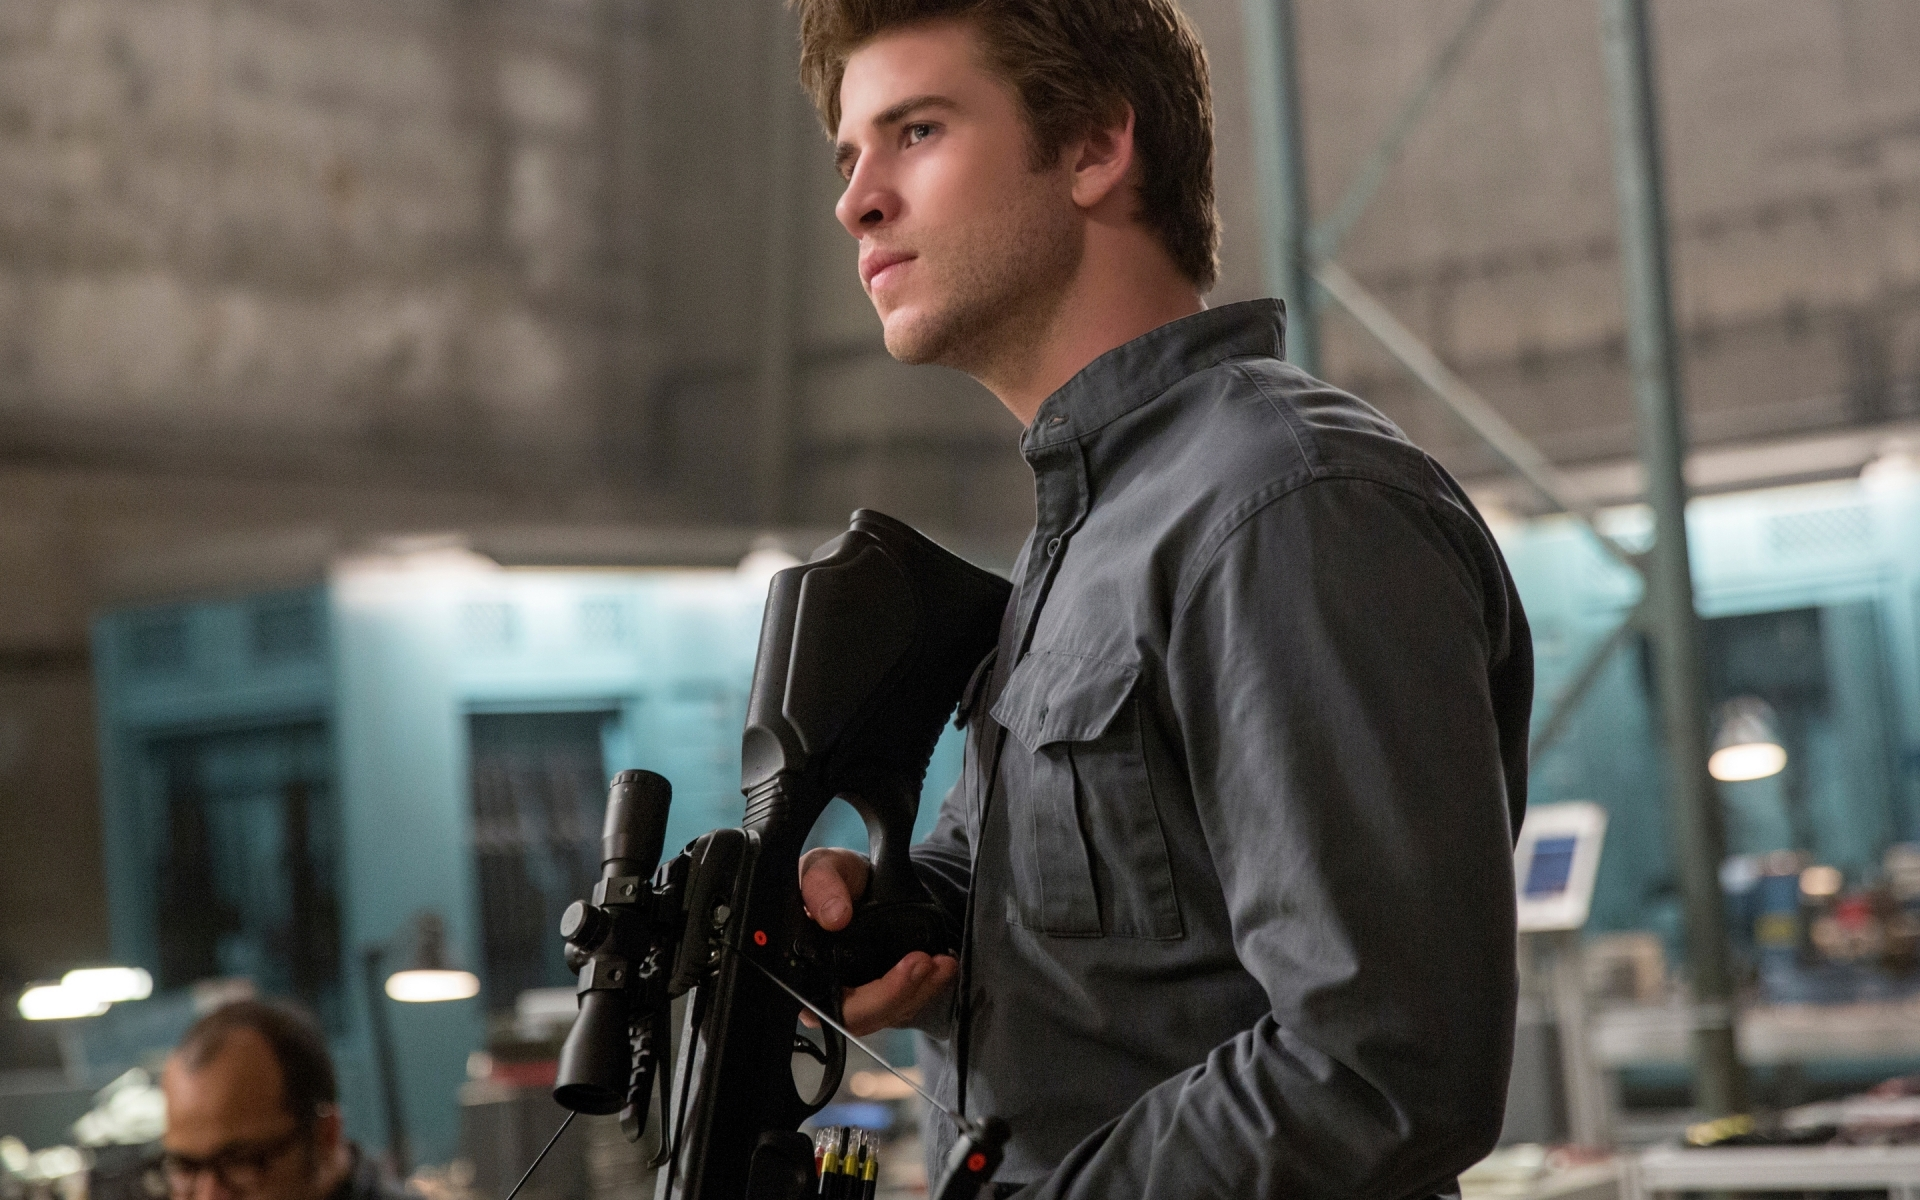 Liam Hemsworth in The Hunger Games for 1920 x 1200 widescreen resolution